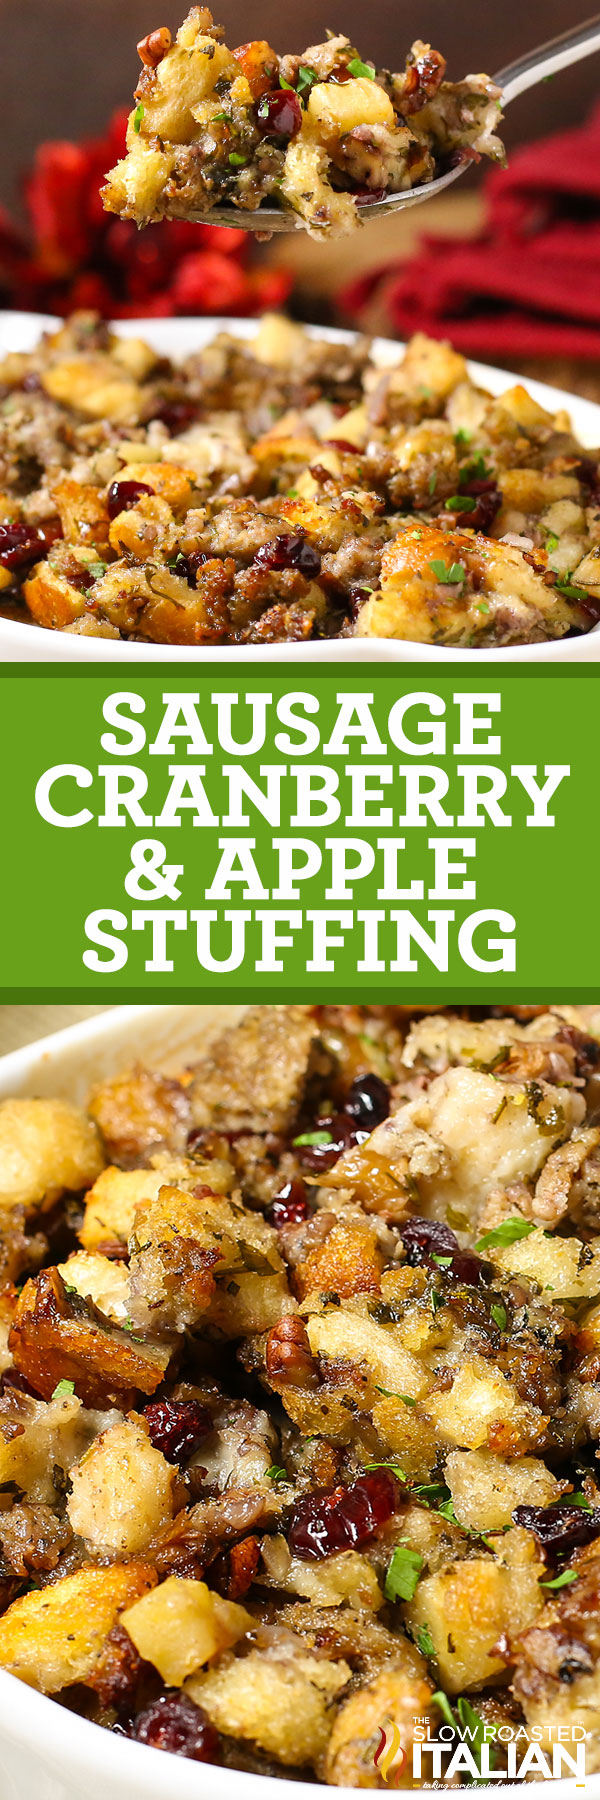 photo collage with text: Sausage Cranberry Apple Stuffing